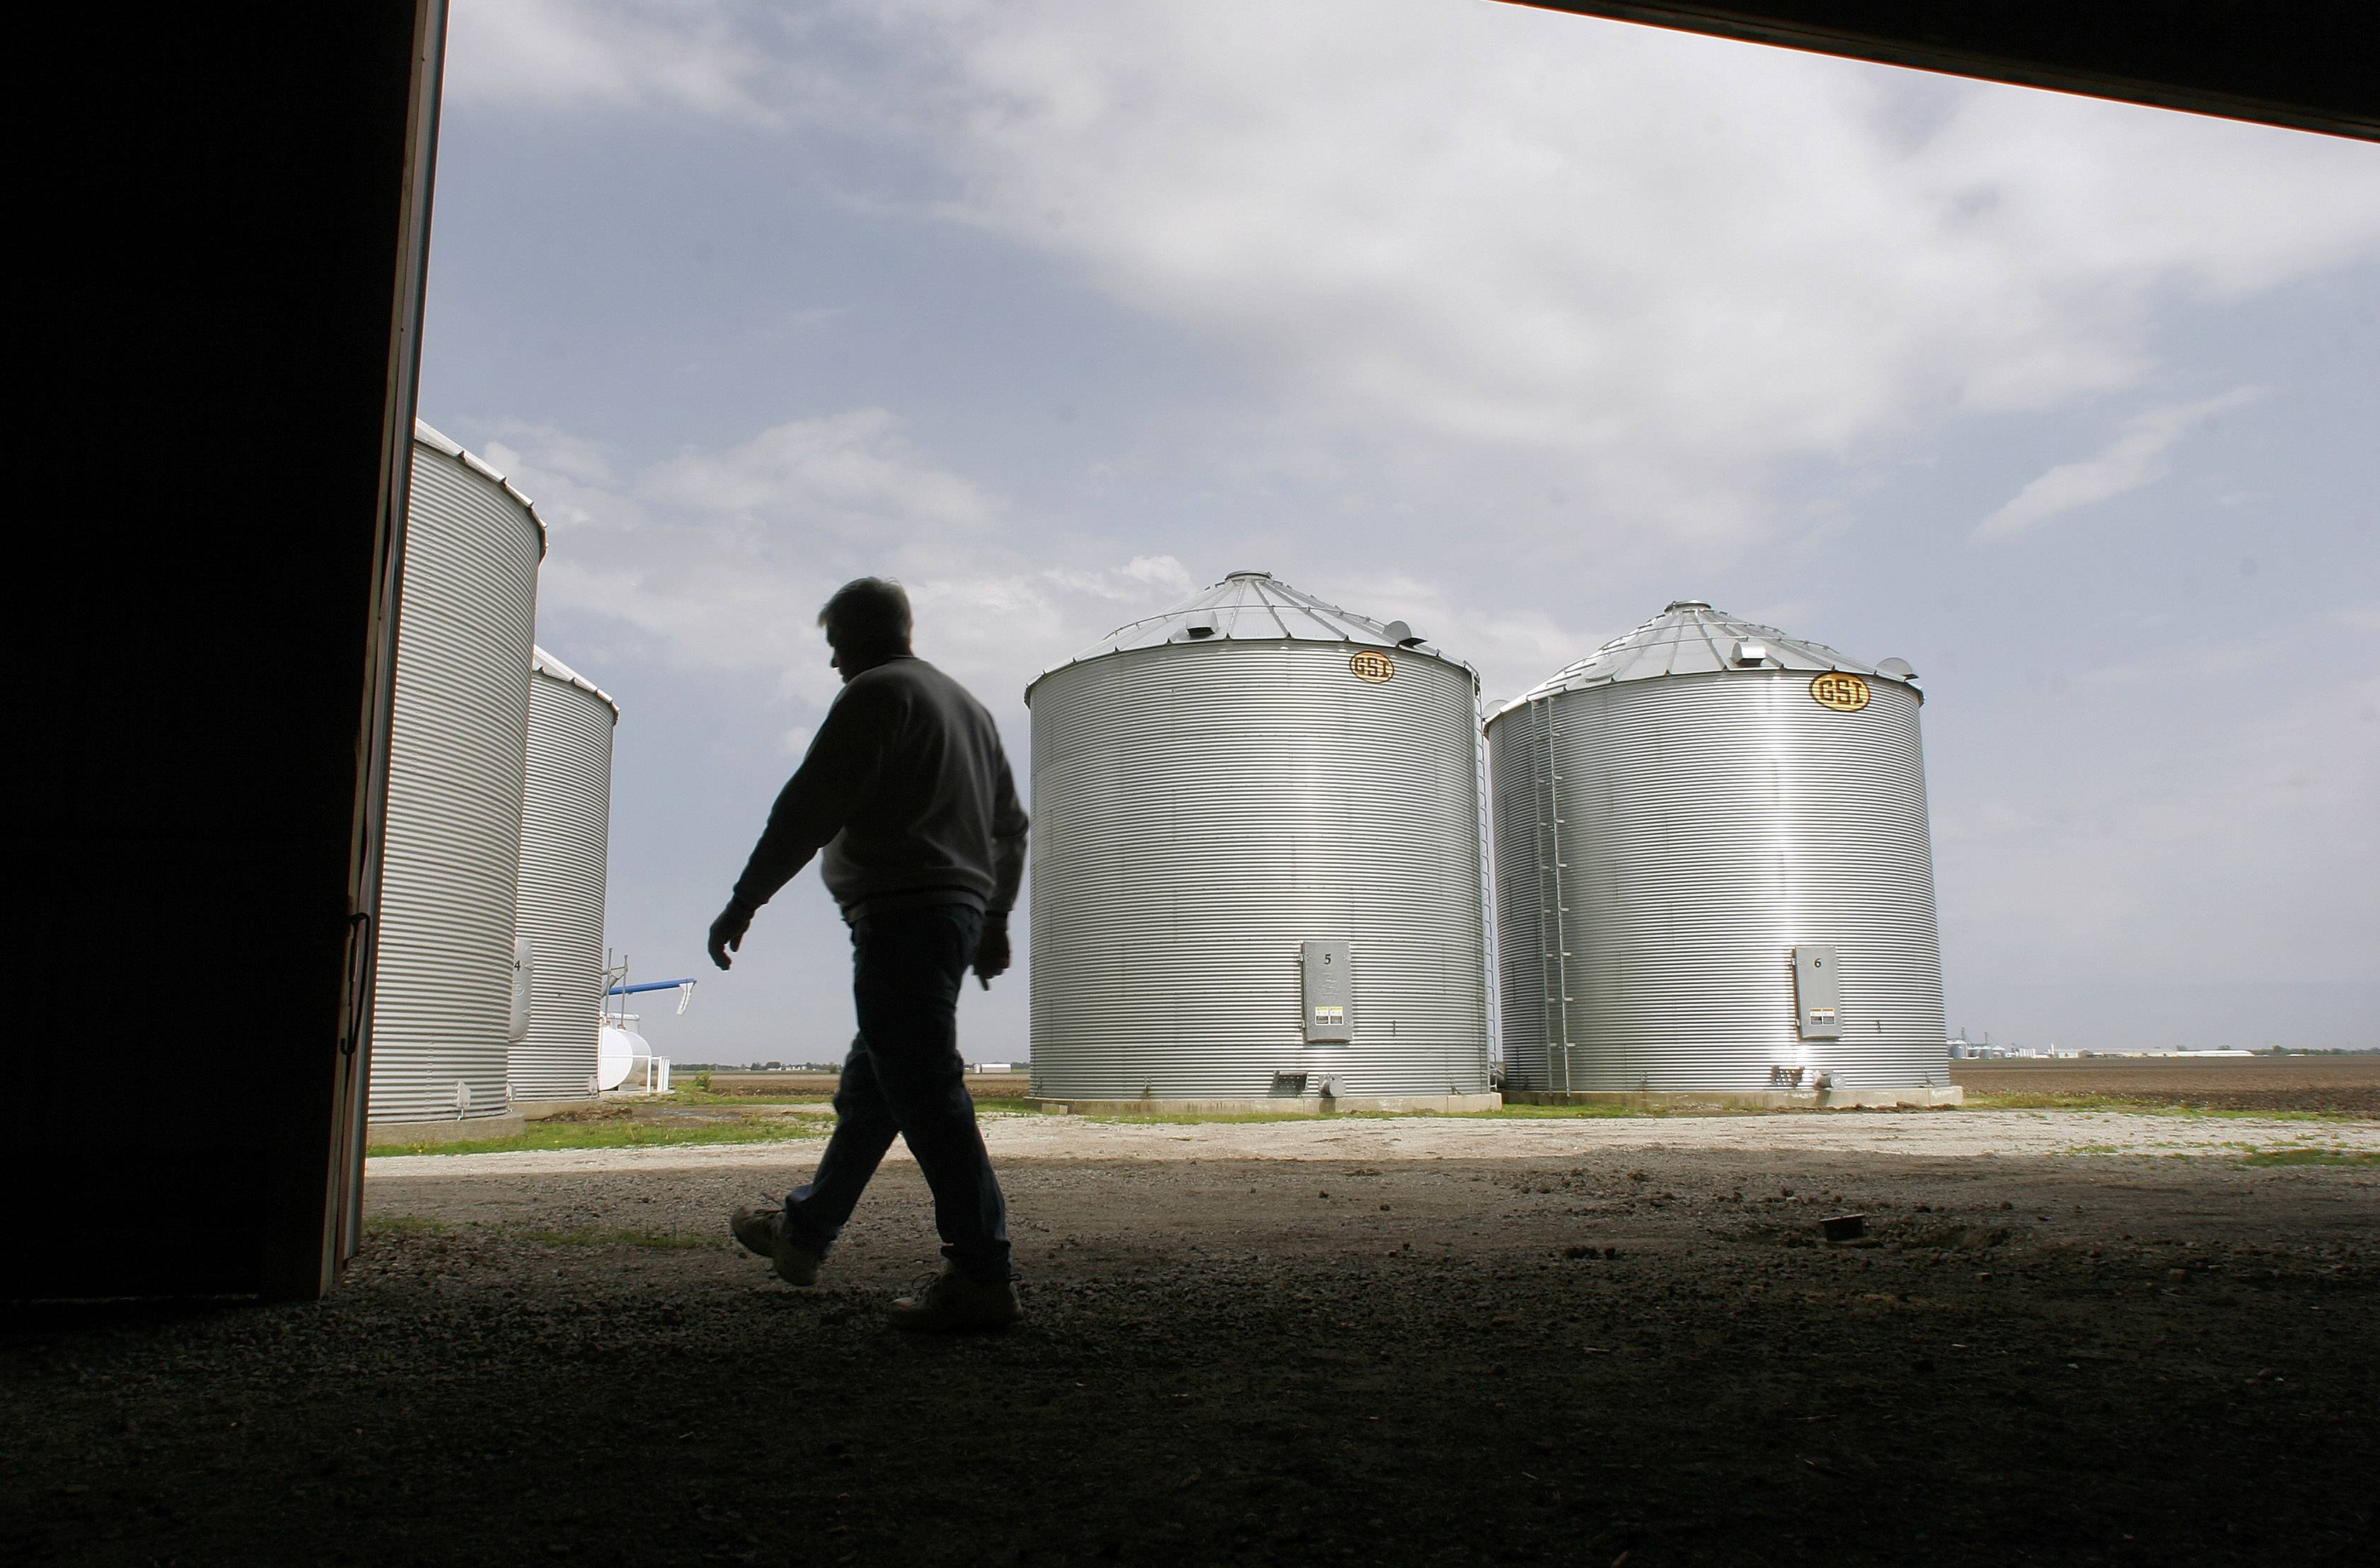 Lower prices for corn and soybeans will drive the profits of U.S. farmers down to an estimated $113.2 billion in 2014, a decline of 14 percent from last year's record, according to the Department of Agriculture.